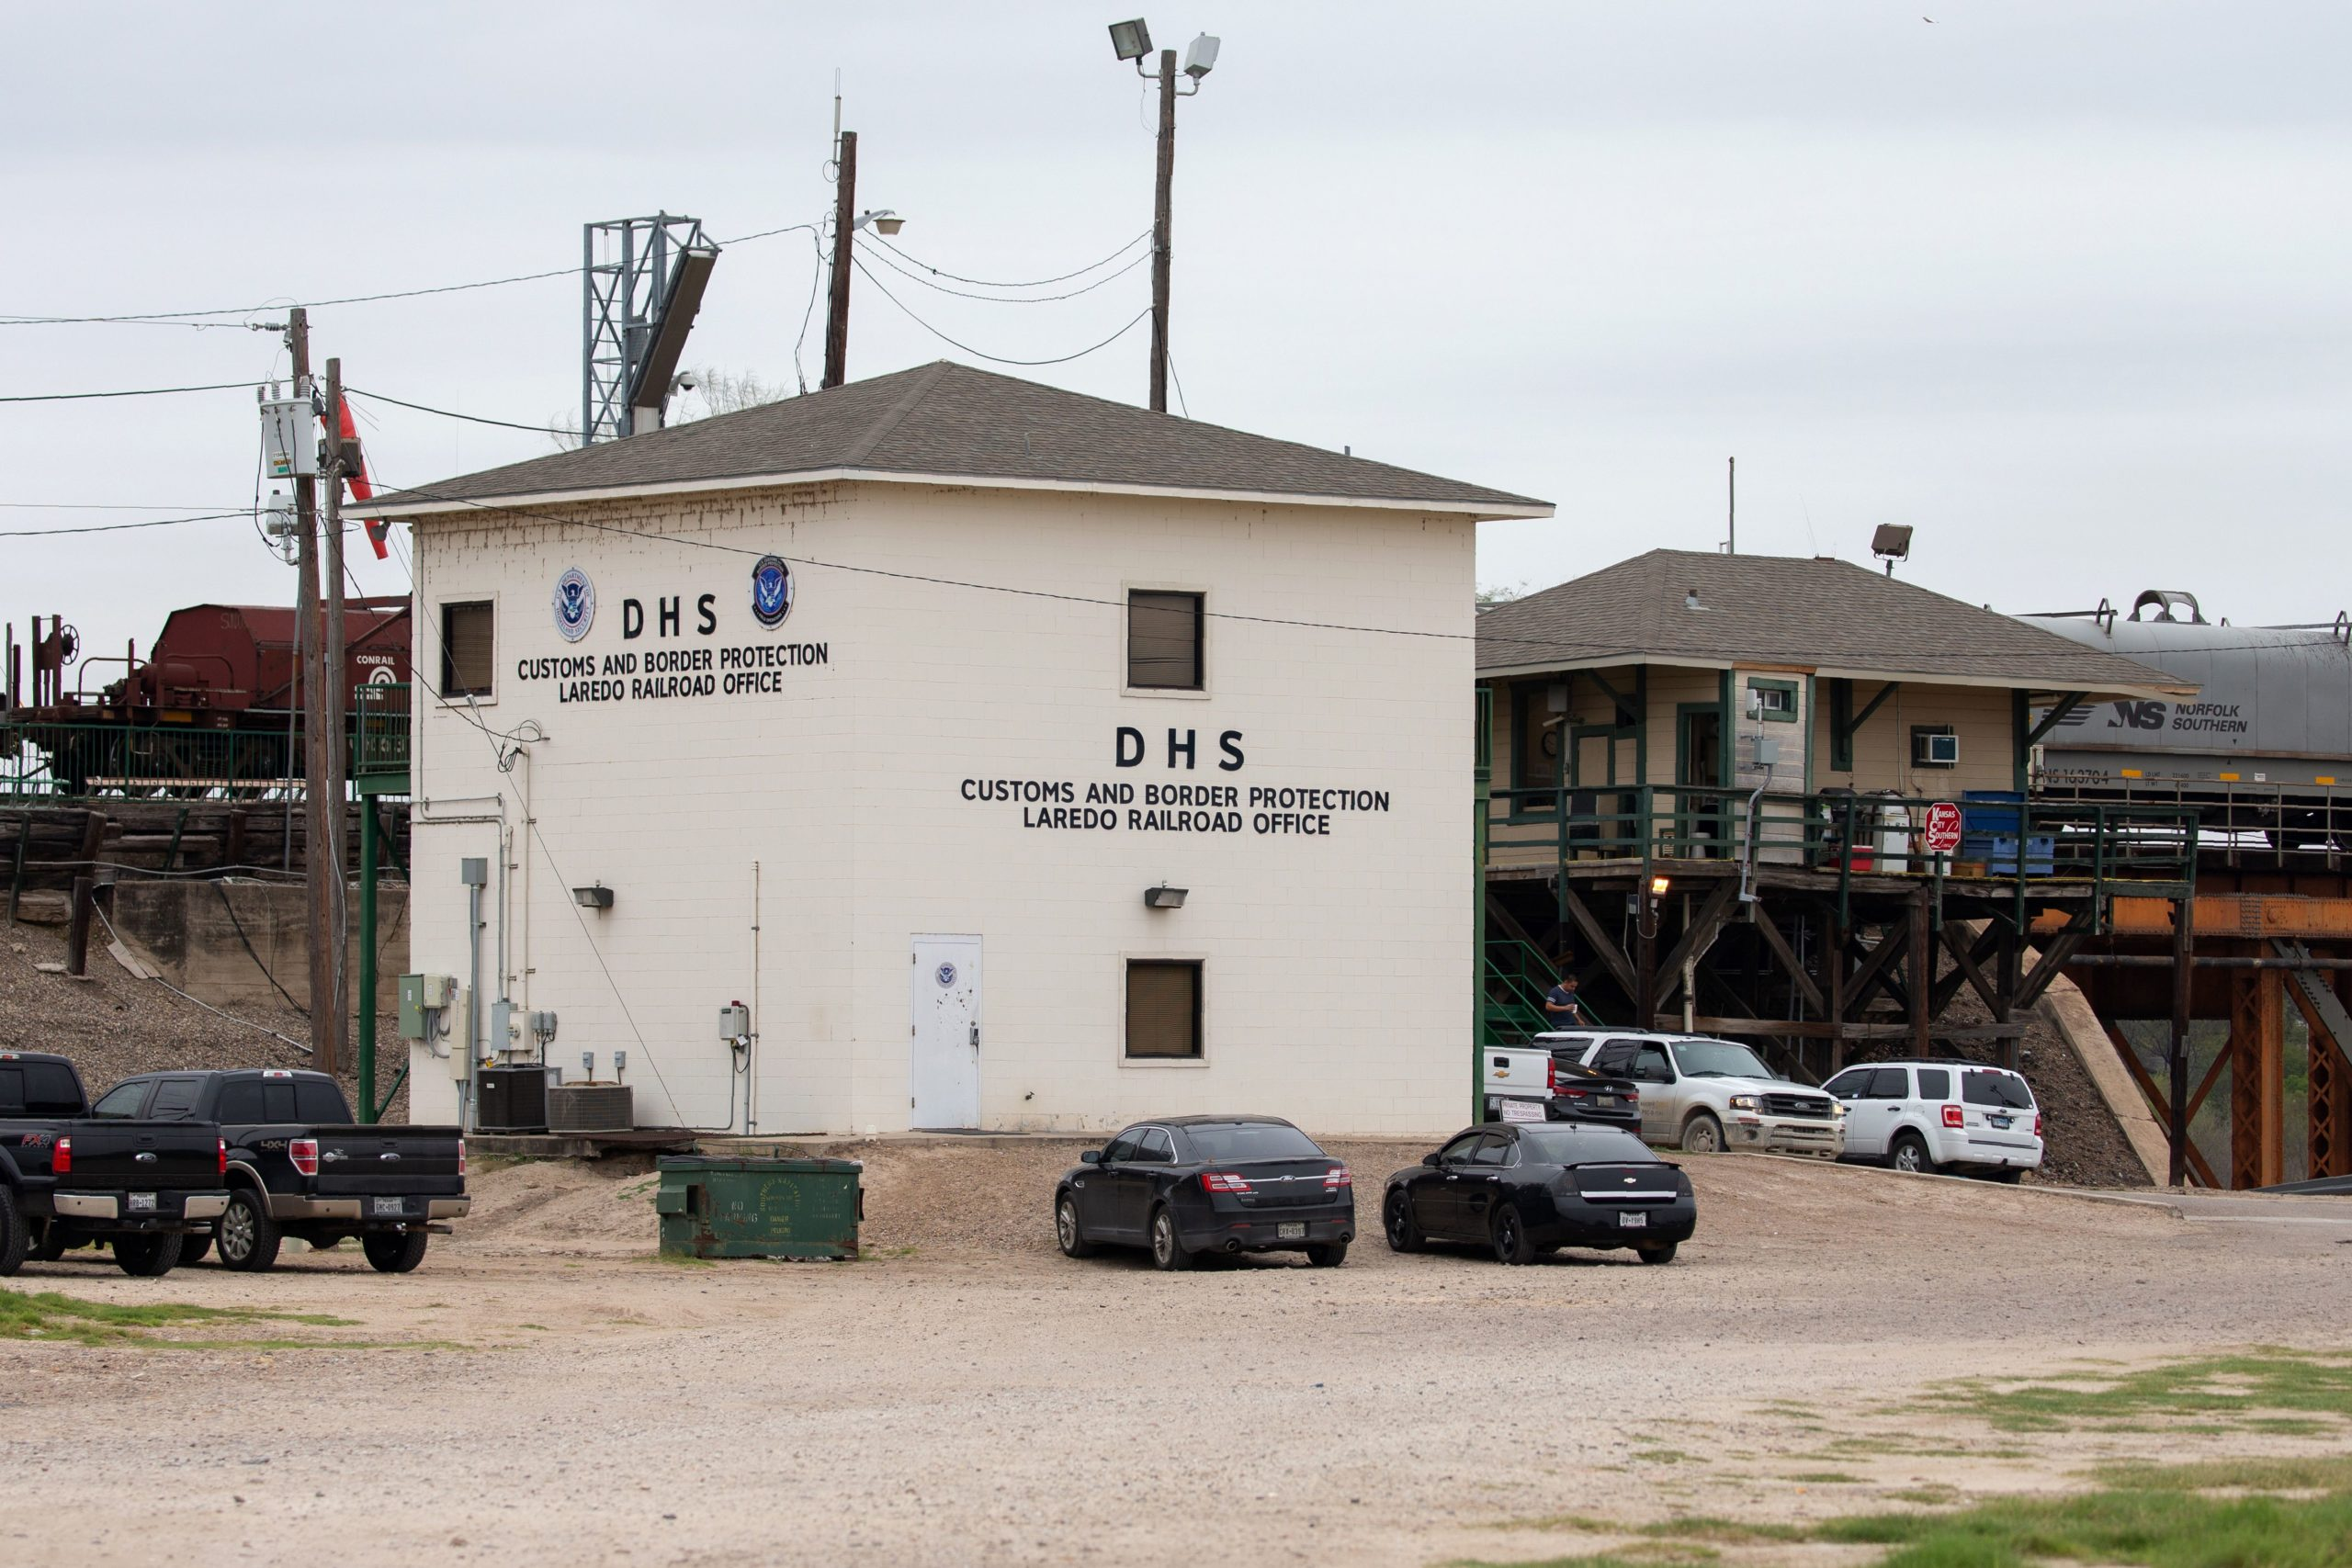 A train passes by the Customs and Border Protection office next to the Texas Mexican Railway International Bridge on January 14, 2019 in Laredo, Texas. (Photo by SUZANNE CORDEIRO / AFP) (Photo credit should read SUZANNE CORDEIRO/AFP via Getty Images)